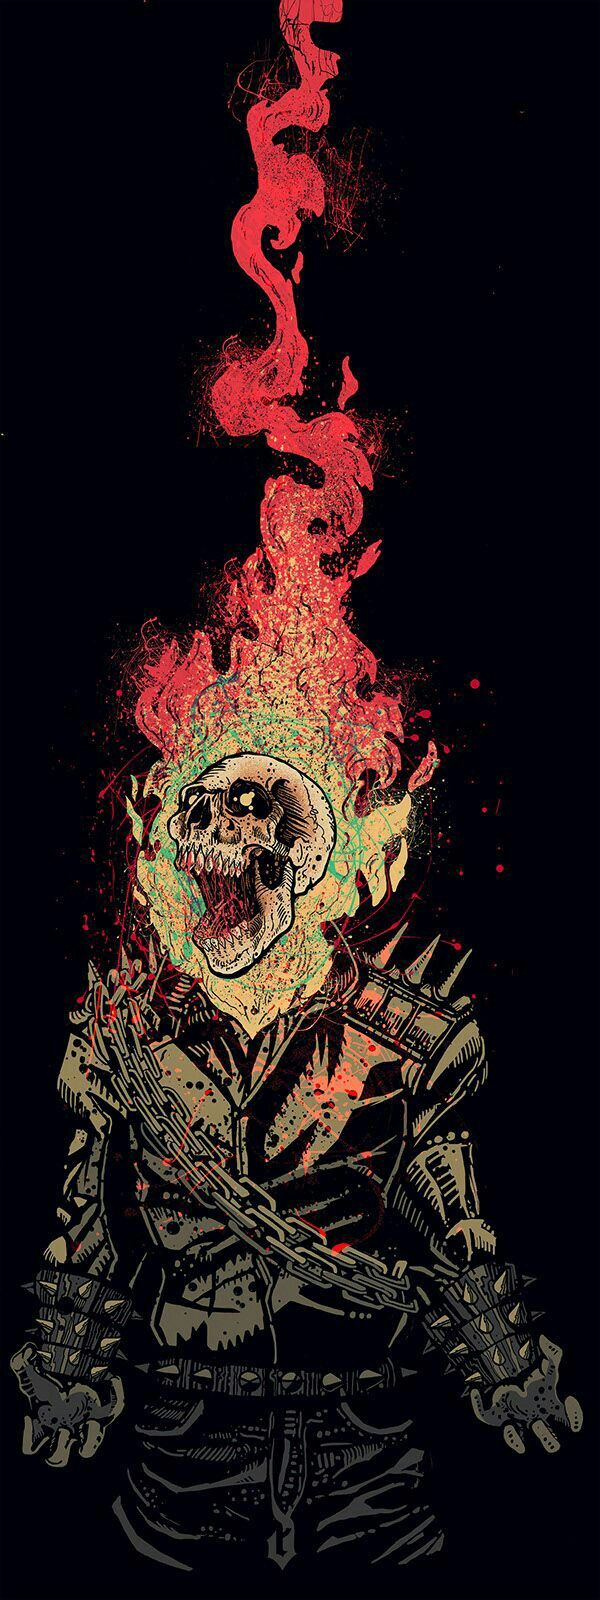 71 best Ghost Rider images on Pinterest | Ghost rider, Cómics y ...